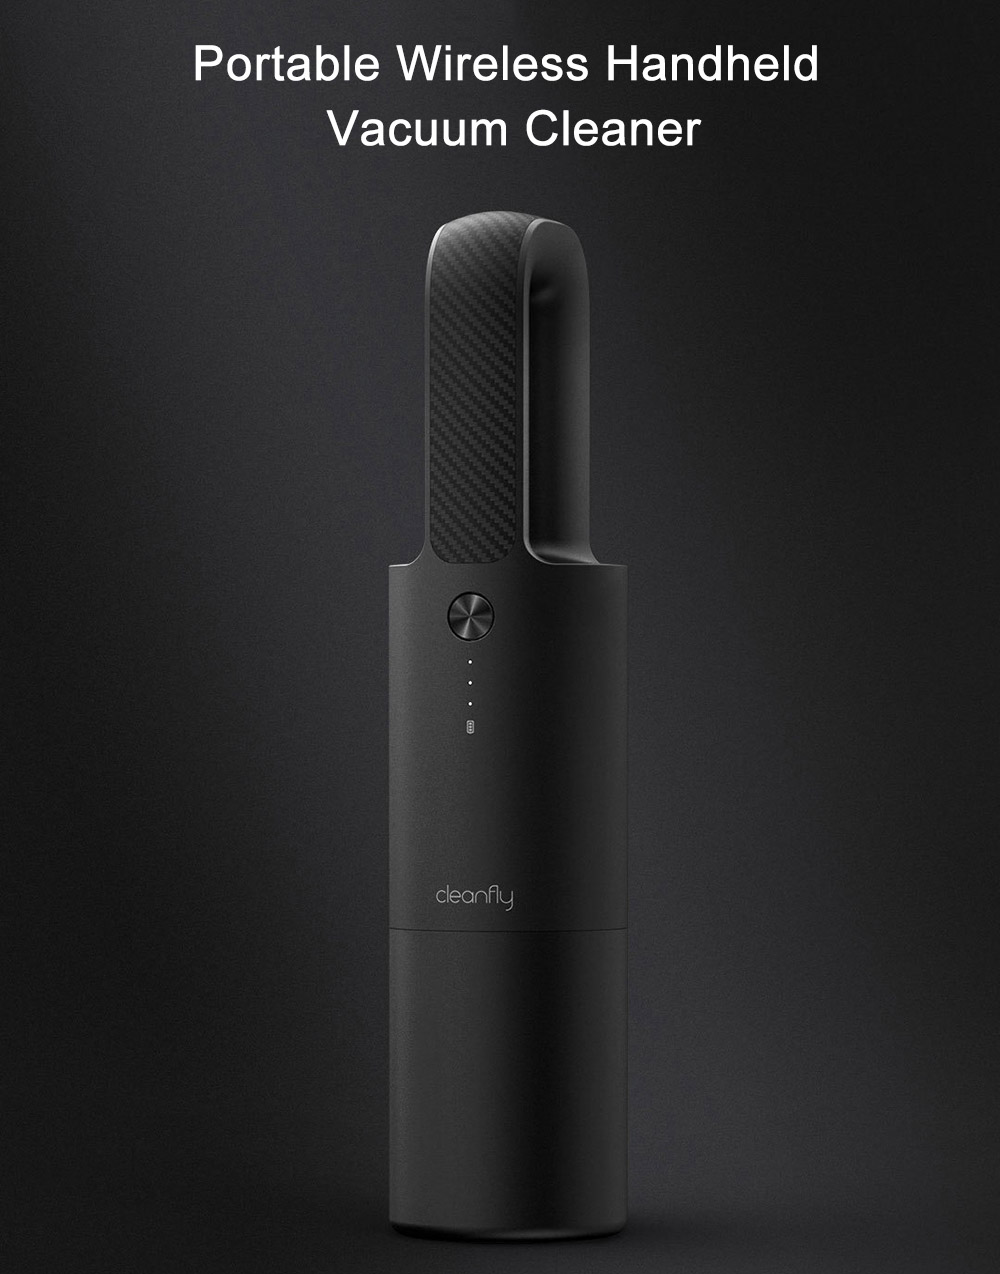 xiaomi cleanfly fvq car vacuum cleaner